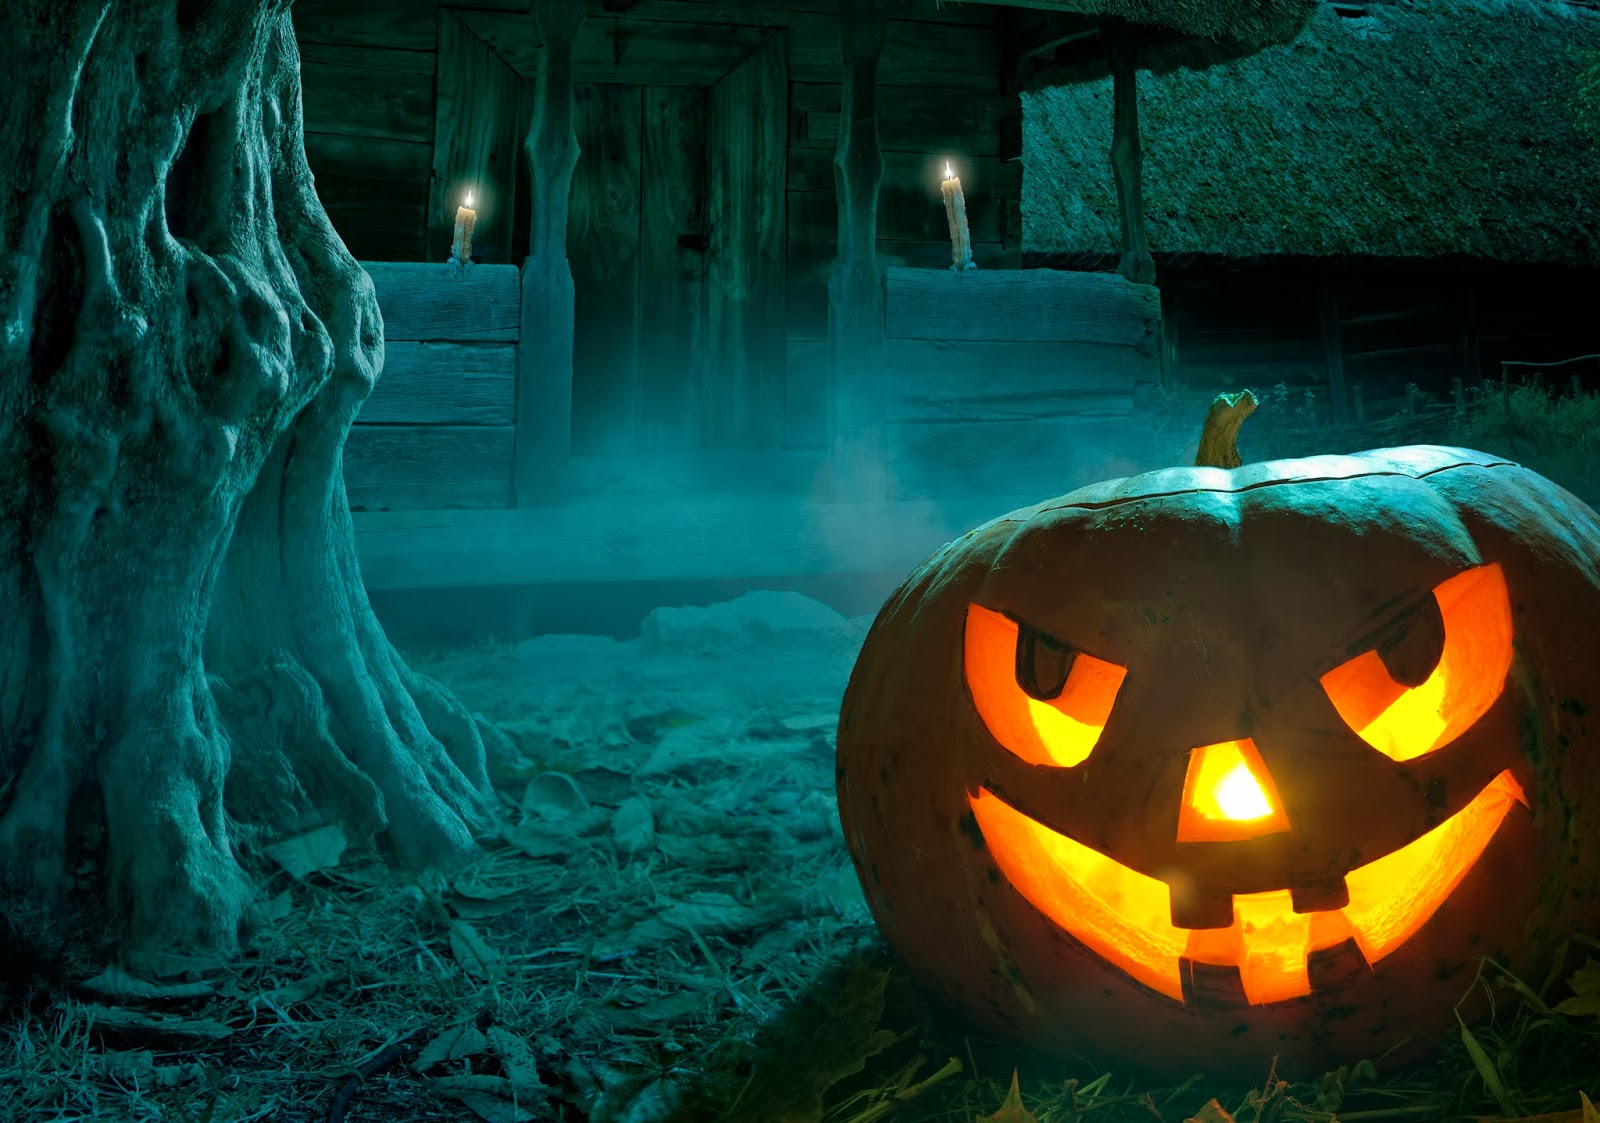 Halloween HD Wallpaper 1080P Images Backgrounds Collection | Wallpapers HD Collection